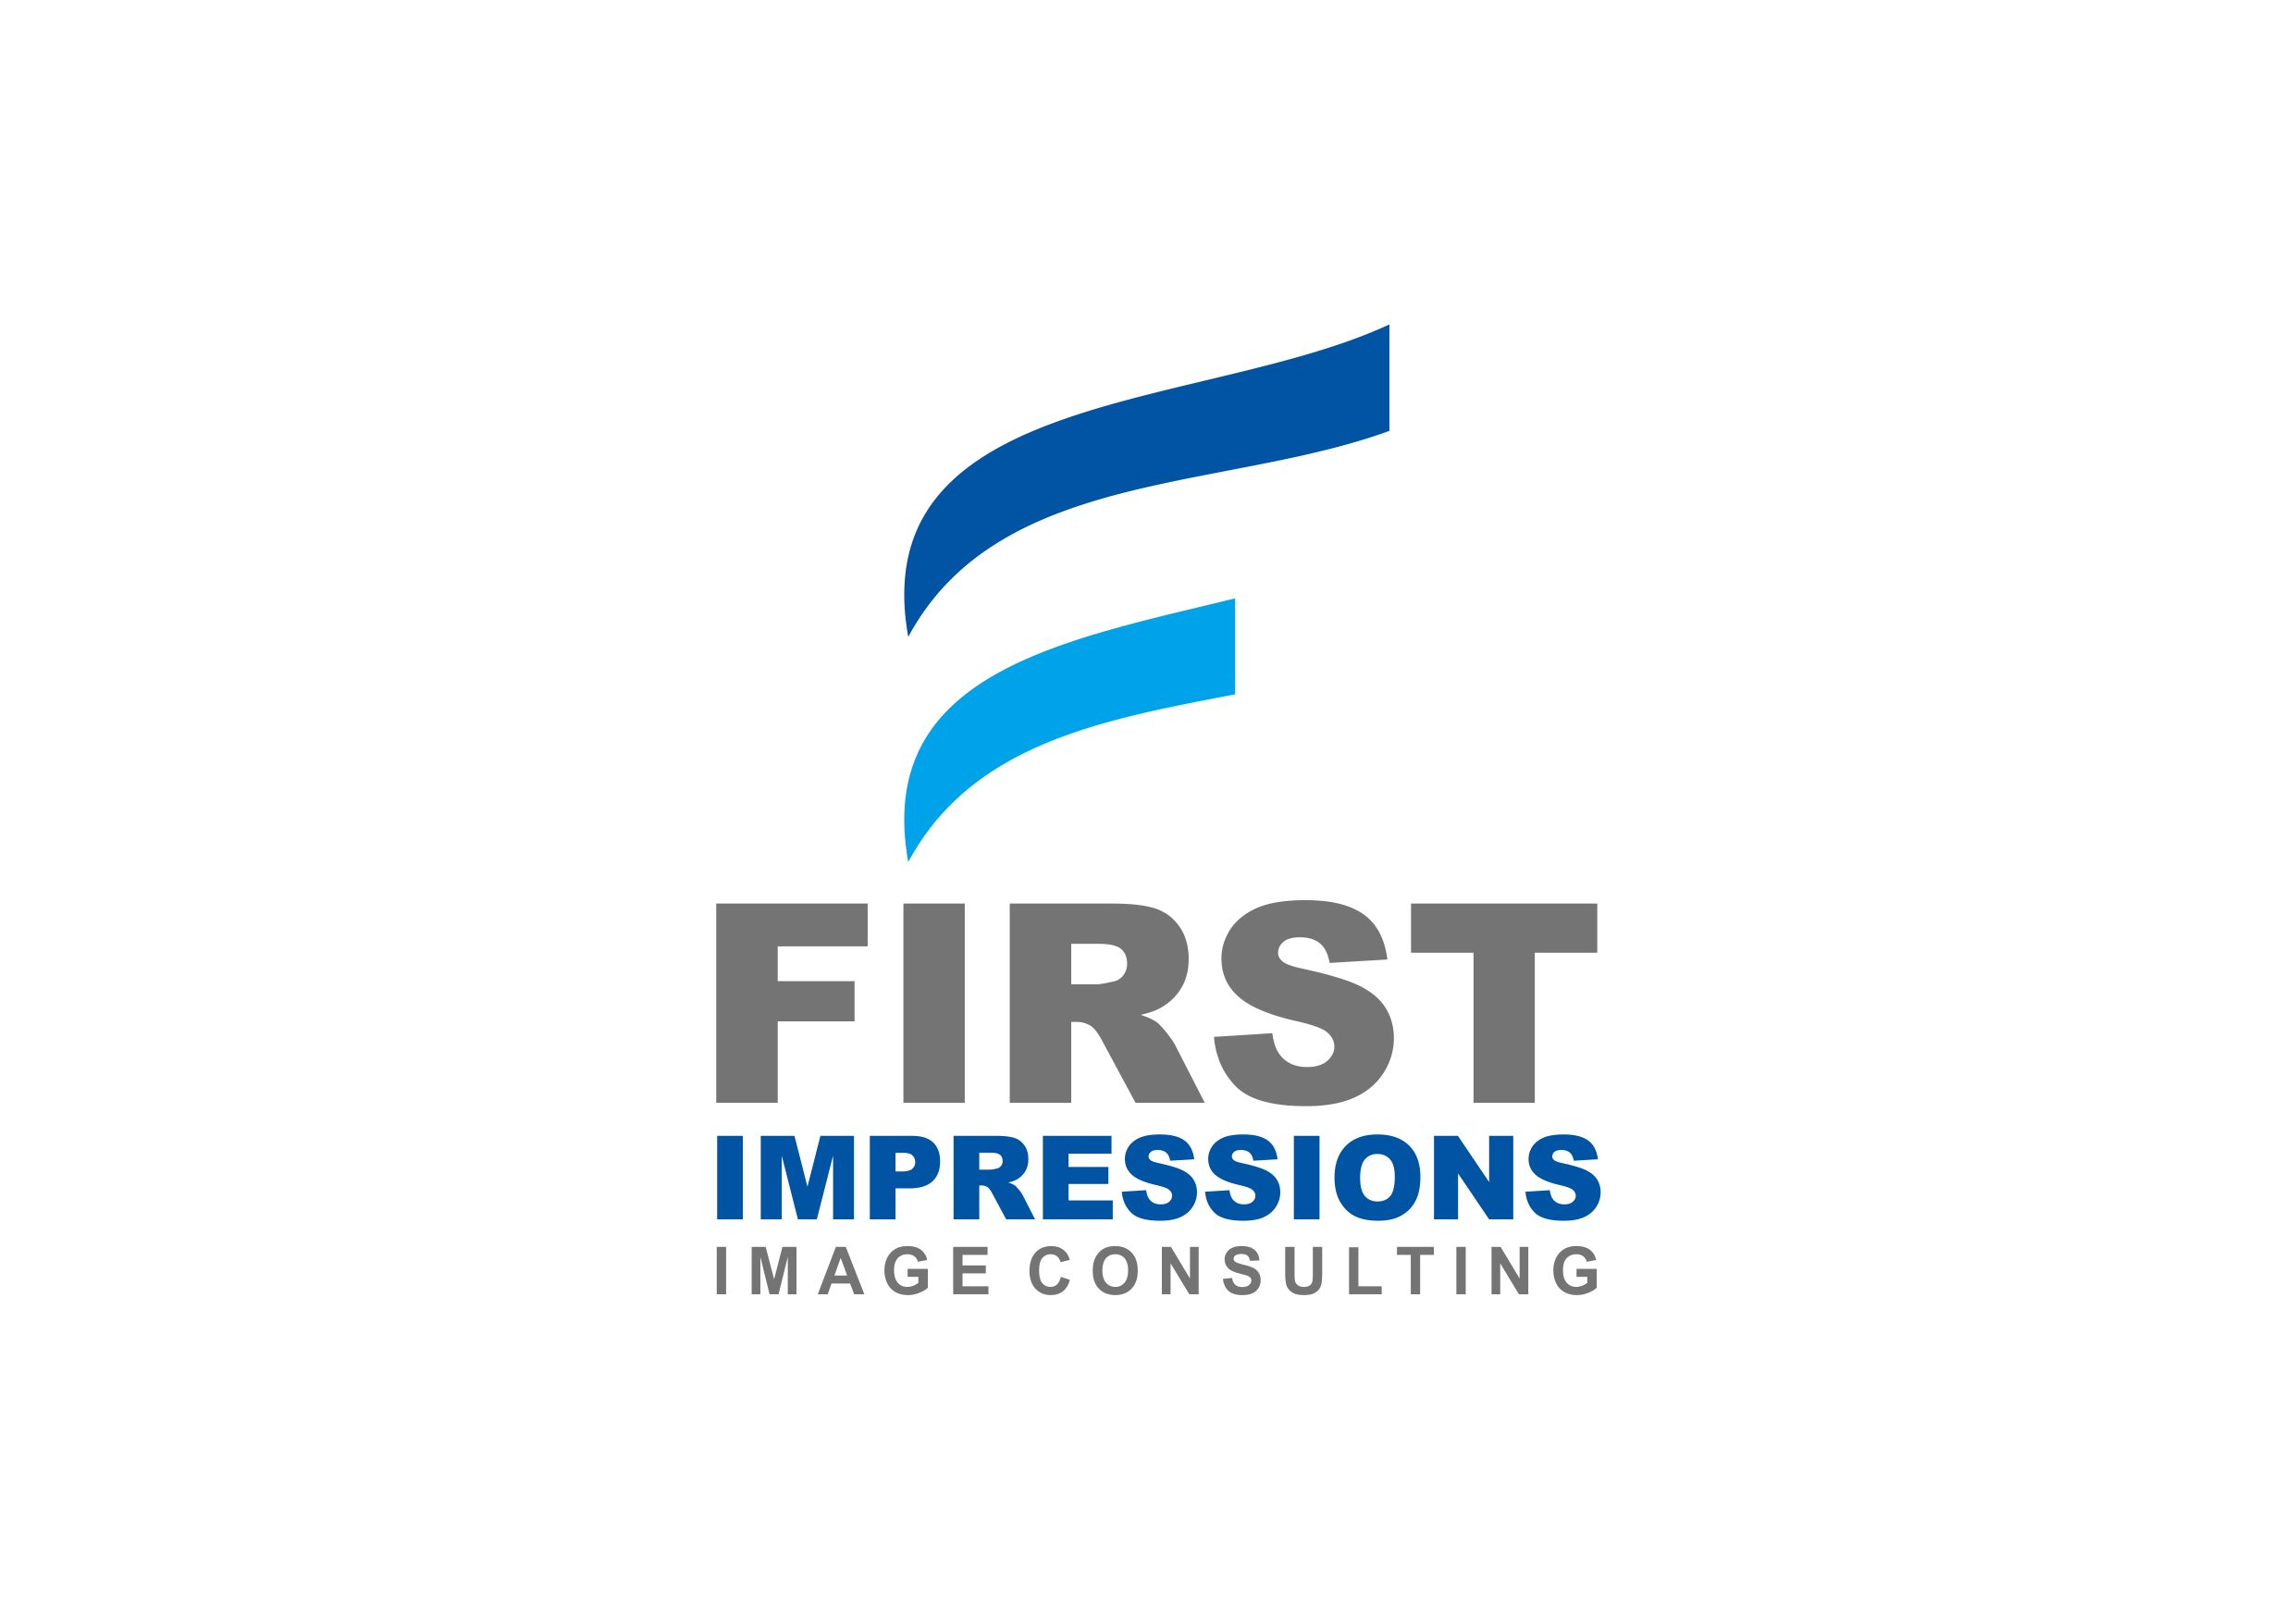 Logo Design by Teguh Mudjianto - Entry No. 6 in the Logo Design Contest First Impressions Image Consulting Logo Design.